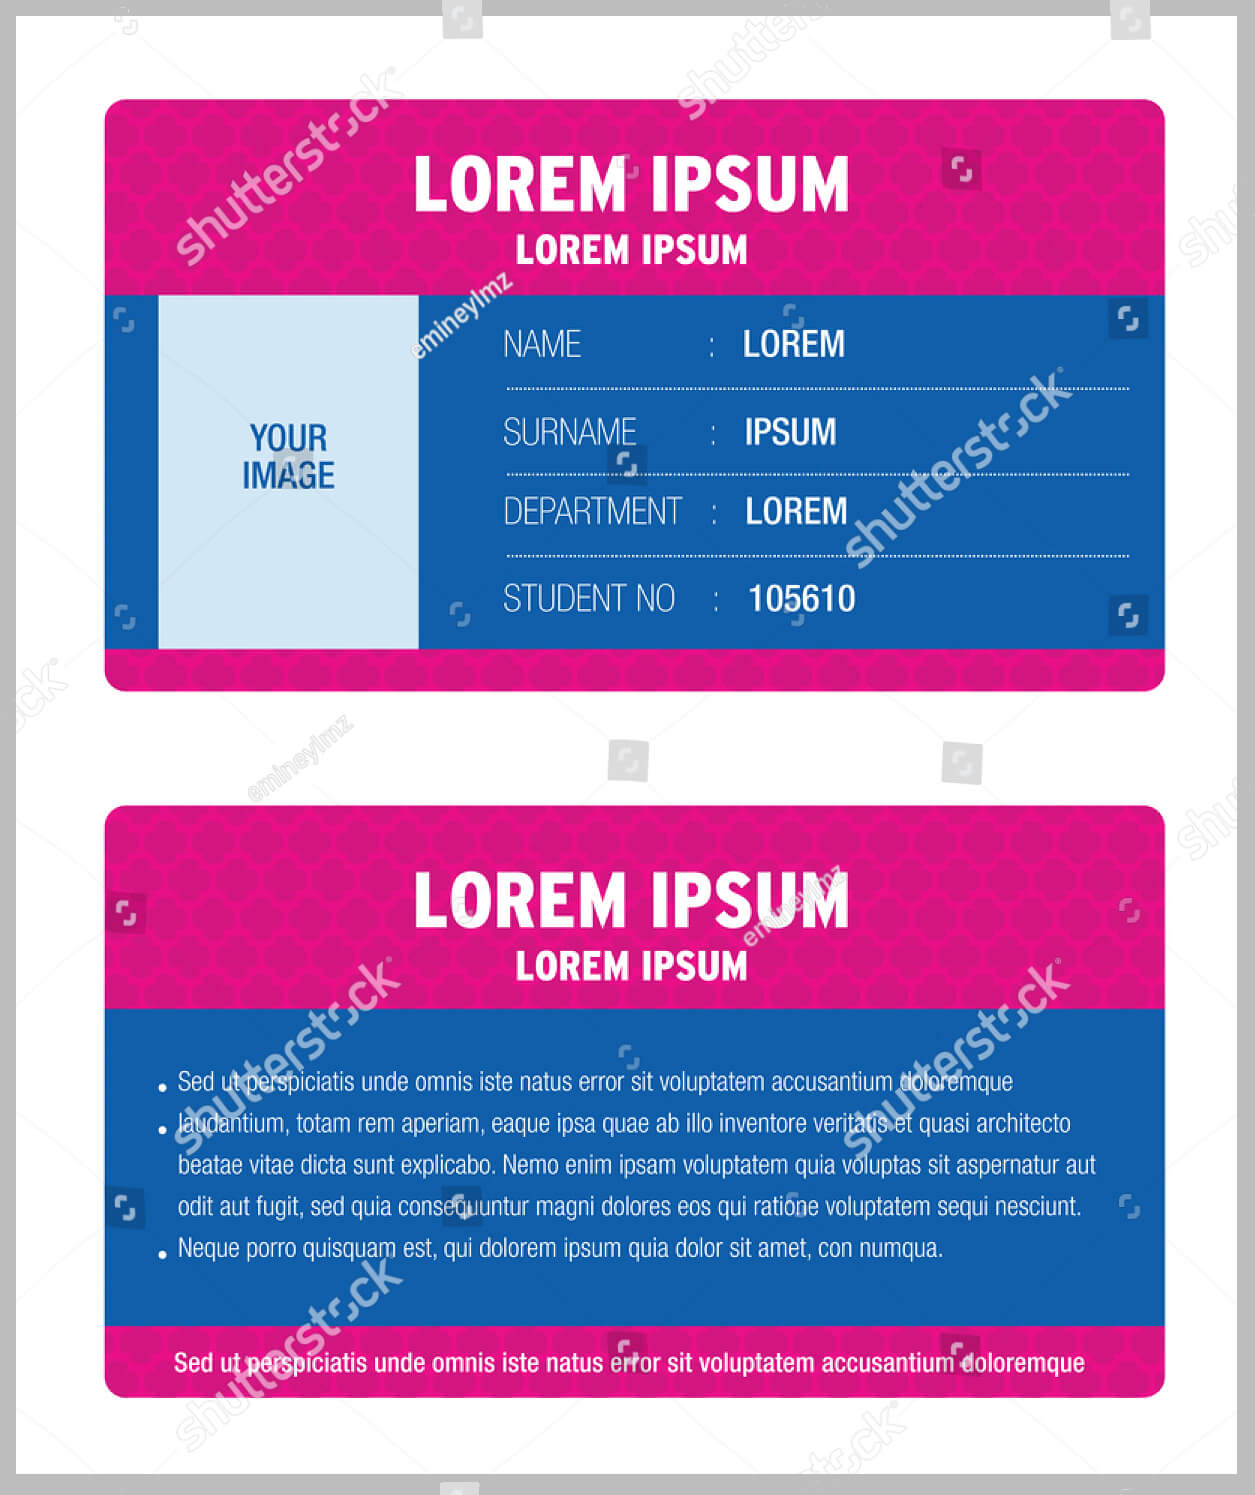 11+ Iconic Student Card Templates - Ai, Psd, Word   Free Inside Isic Card Template